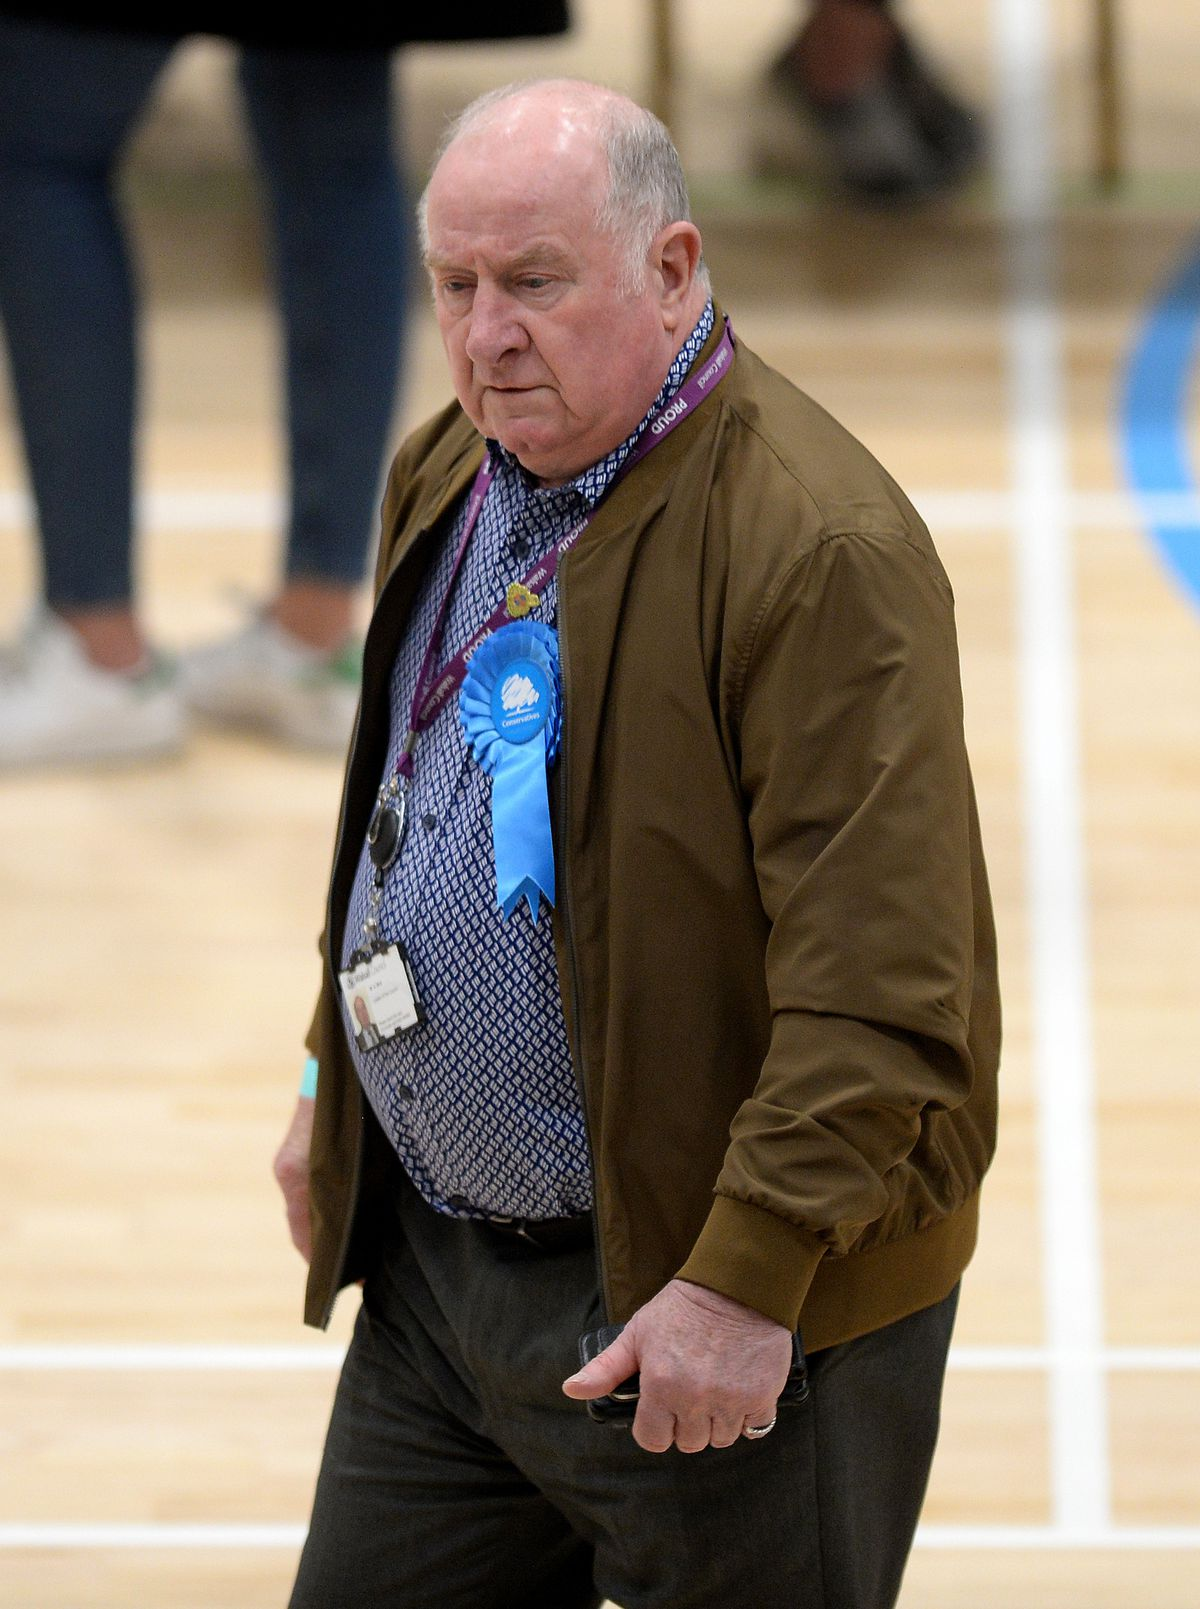 Mike Bird, the Conservative leader of Walsall Council, patrols the count